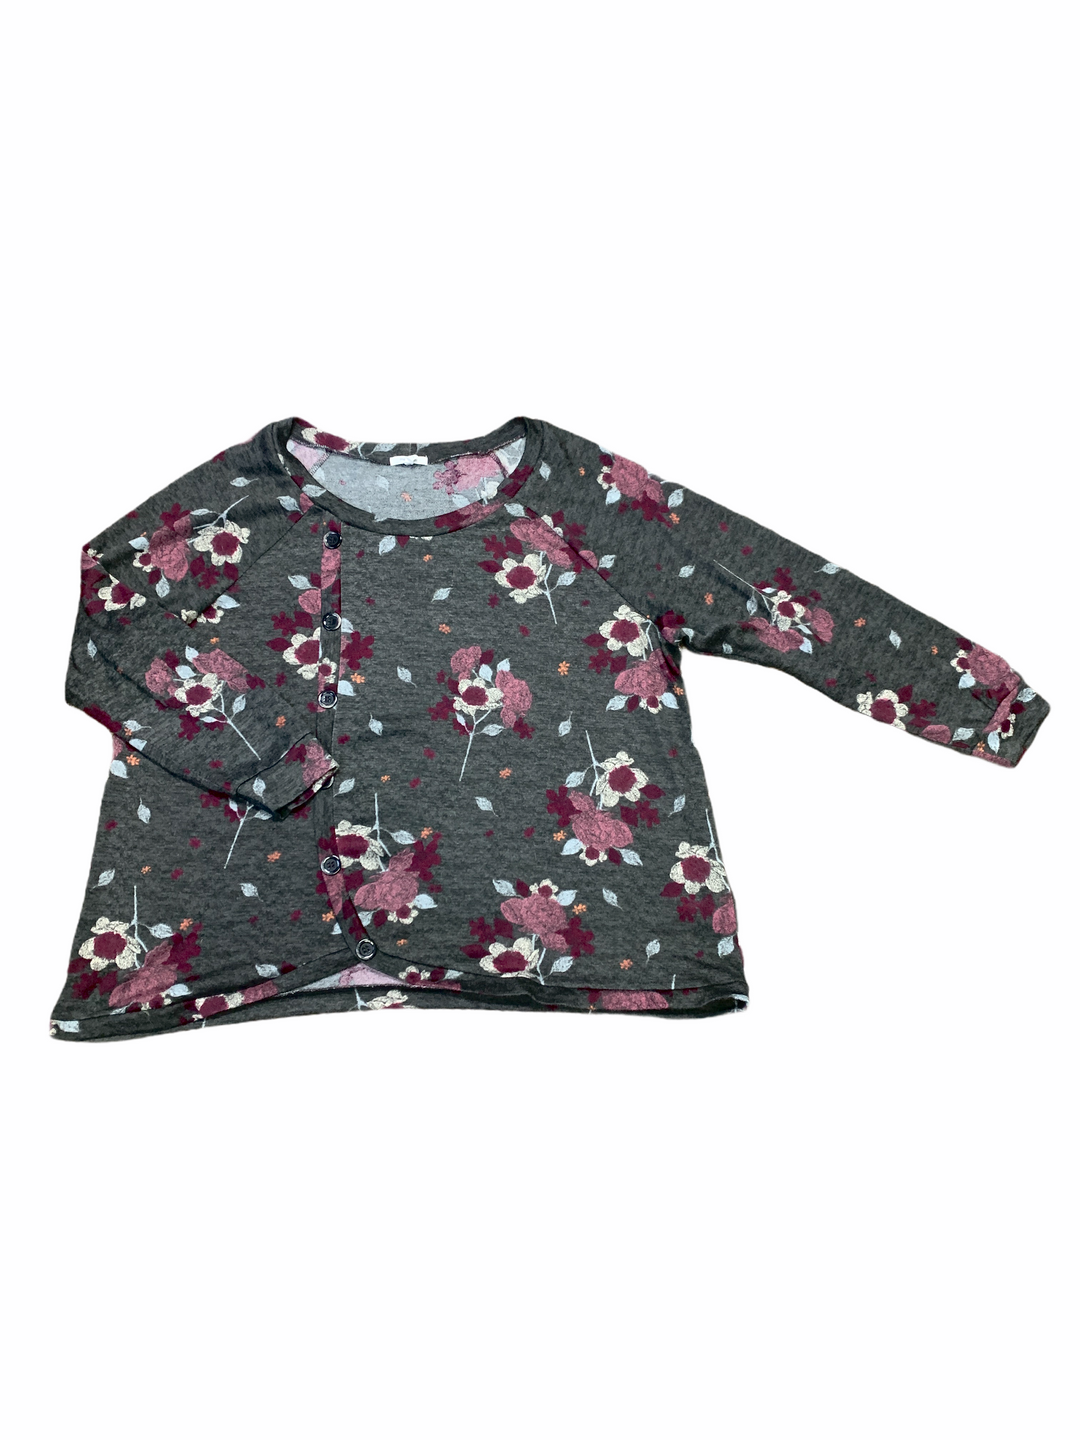 Primary Photo - BRAND: MAURICES <BR>STYLE: SWEATER LIGHTWEIGHT <BR>COLOR: FLORAL <BR>SIZE: 3X <BR>OTHER INFO: CHARCOAL W PINK WHITE ORANGE <BR>SKU: 223-22361-21883